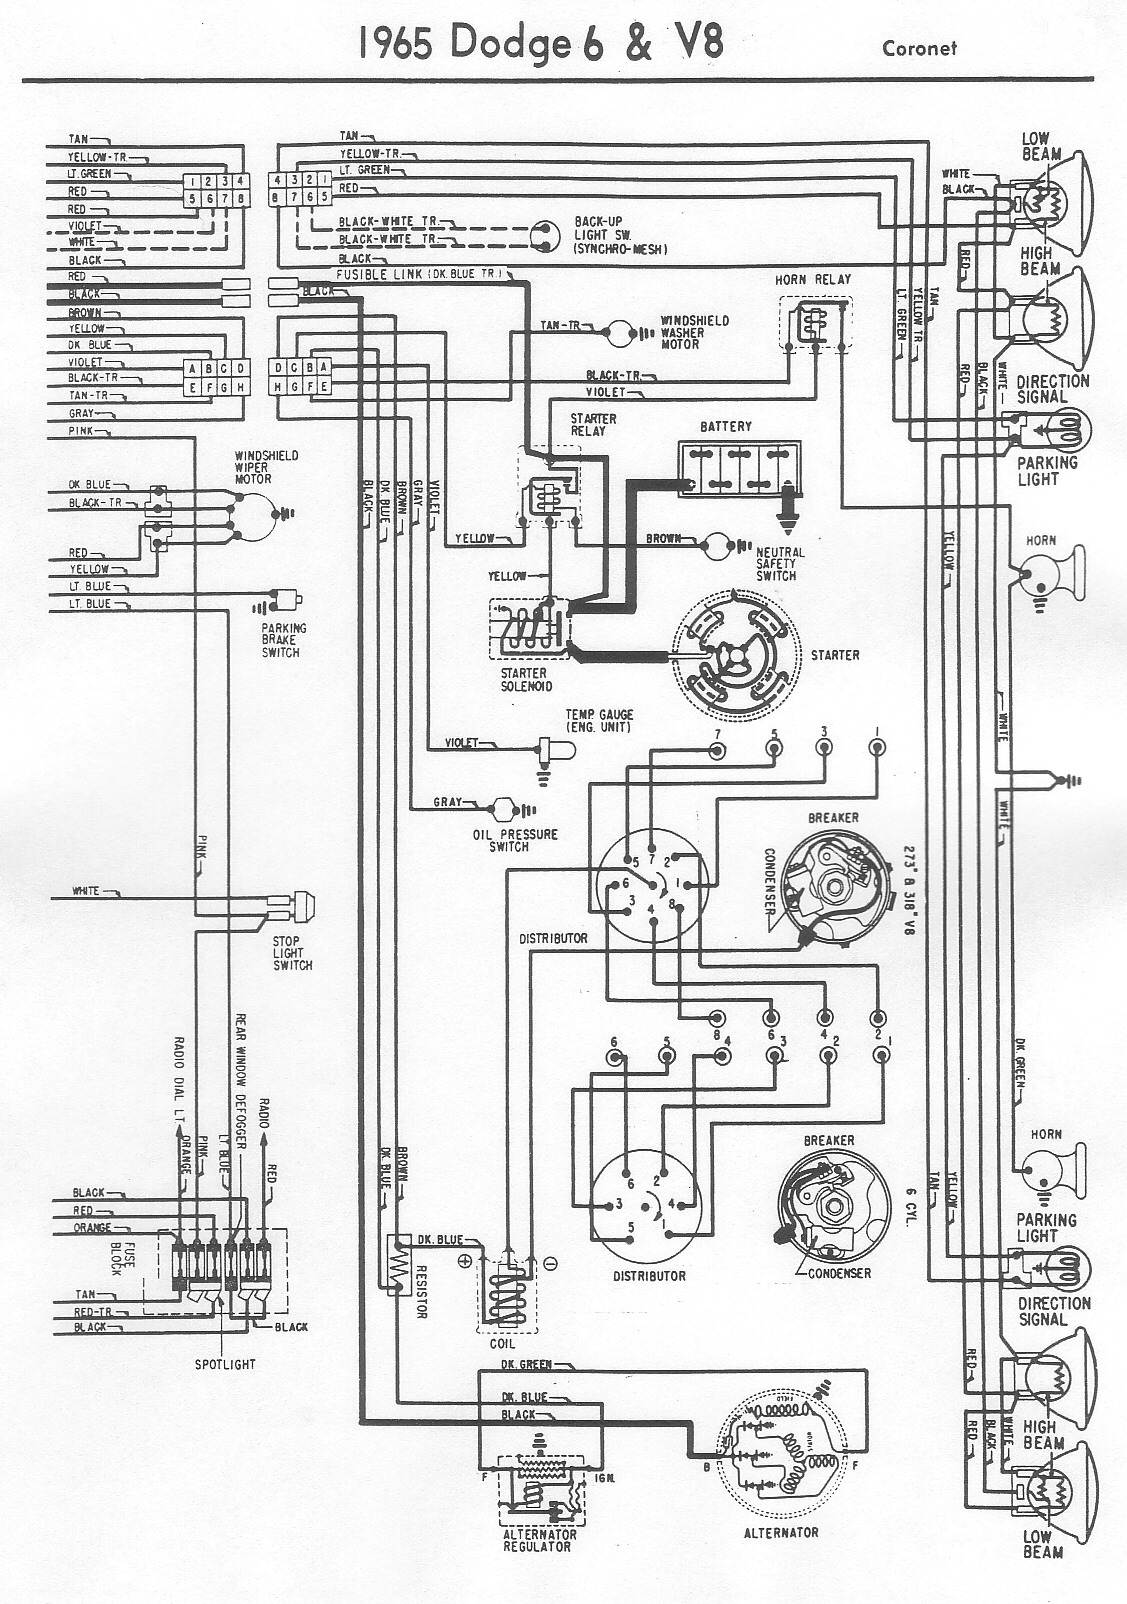 1967 dodge charger wiring diagrams wiring diagram m6 1967 dodge a100 wiring diagram [ 1127 x 1604 Pixel ]